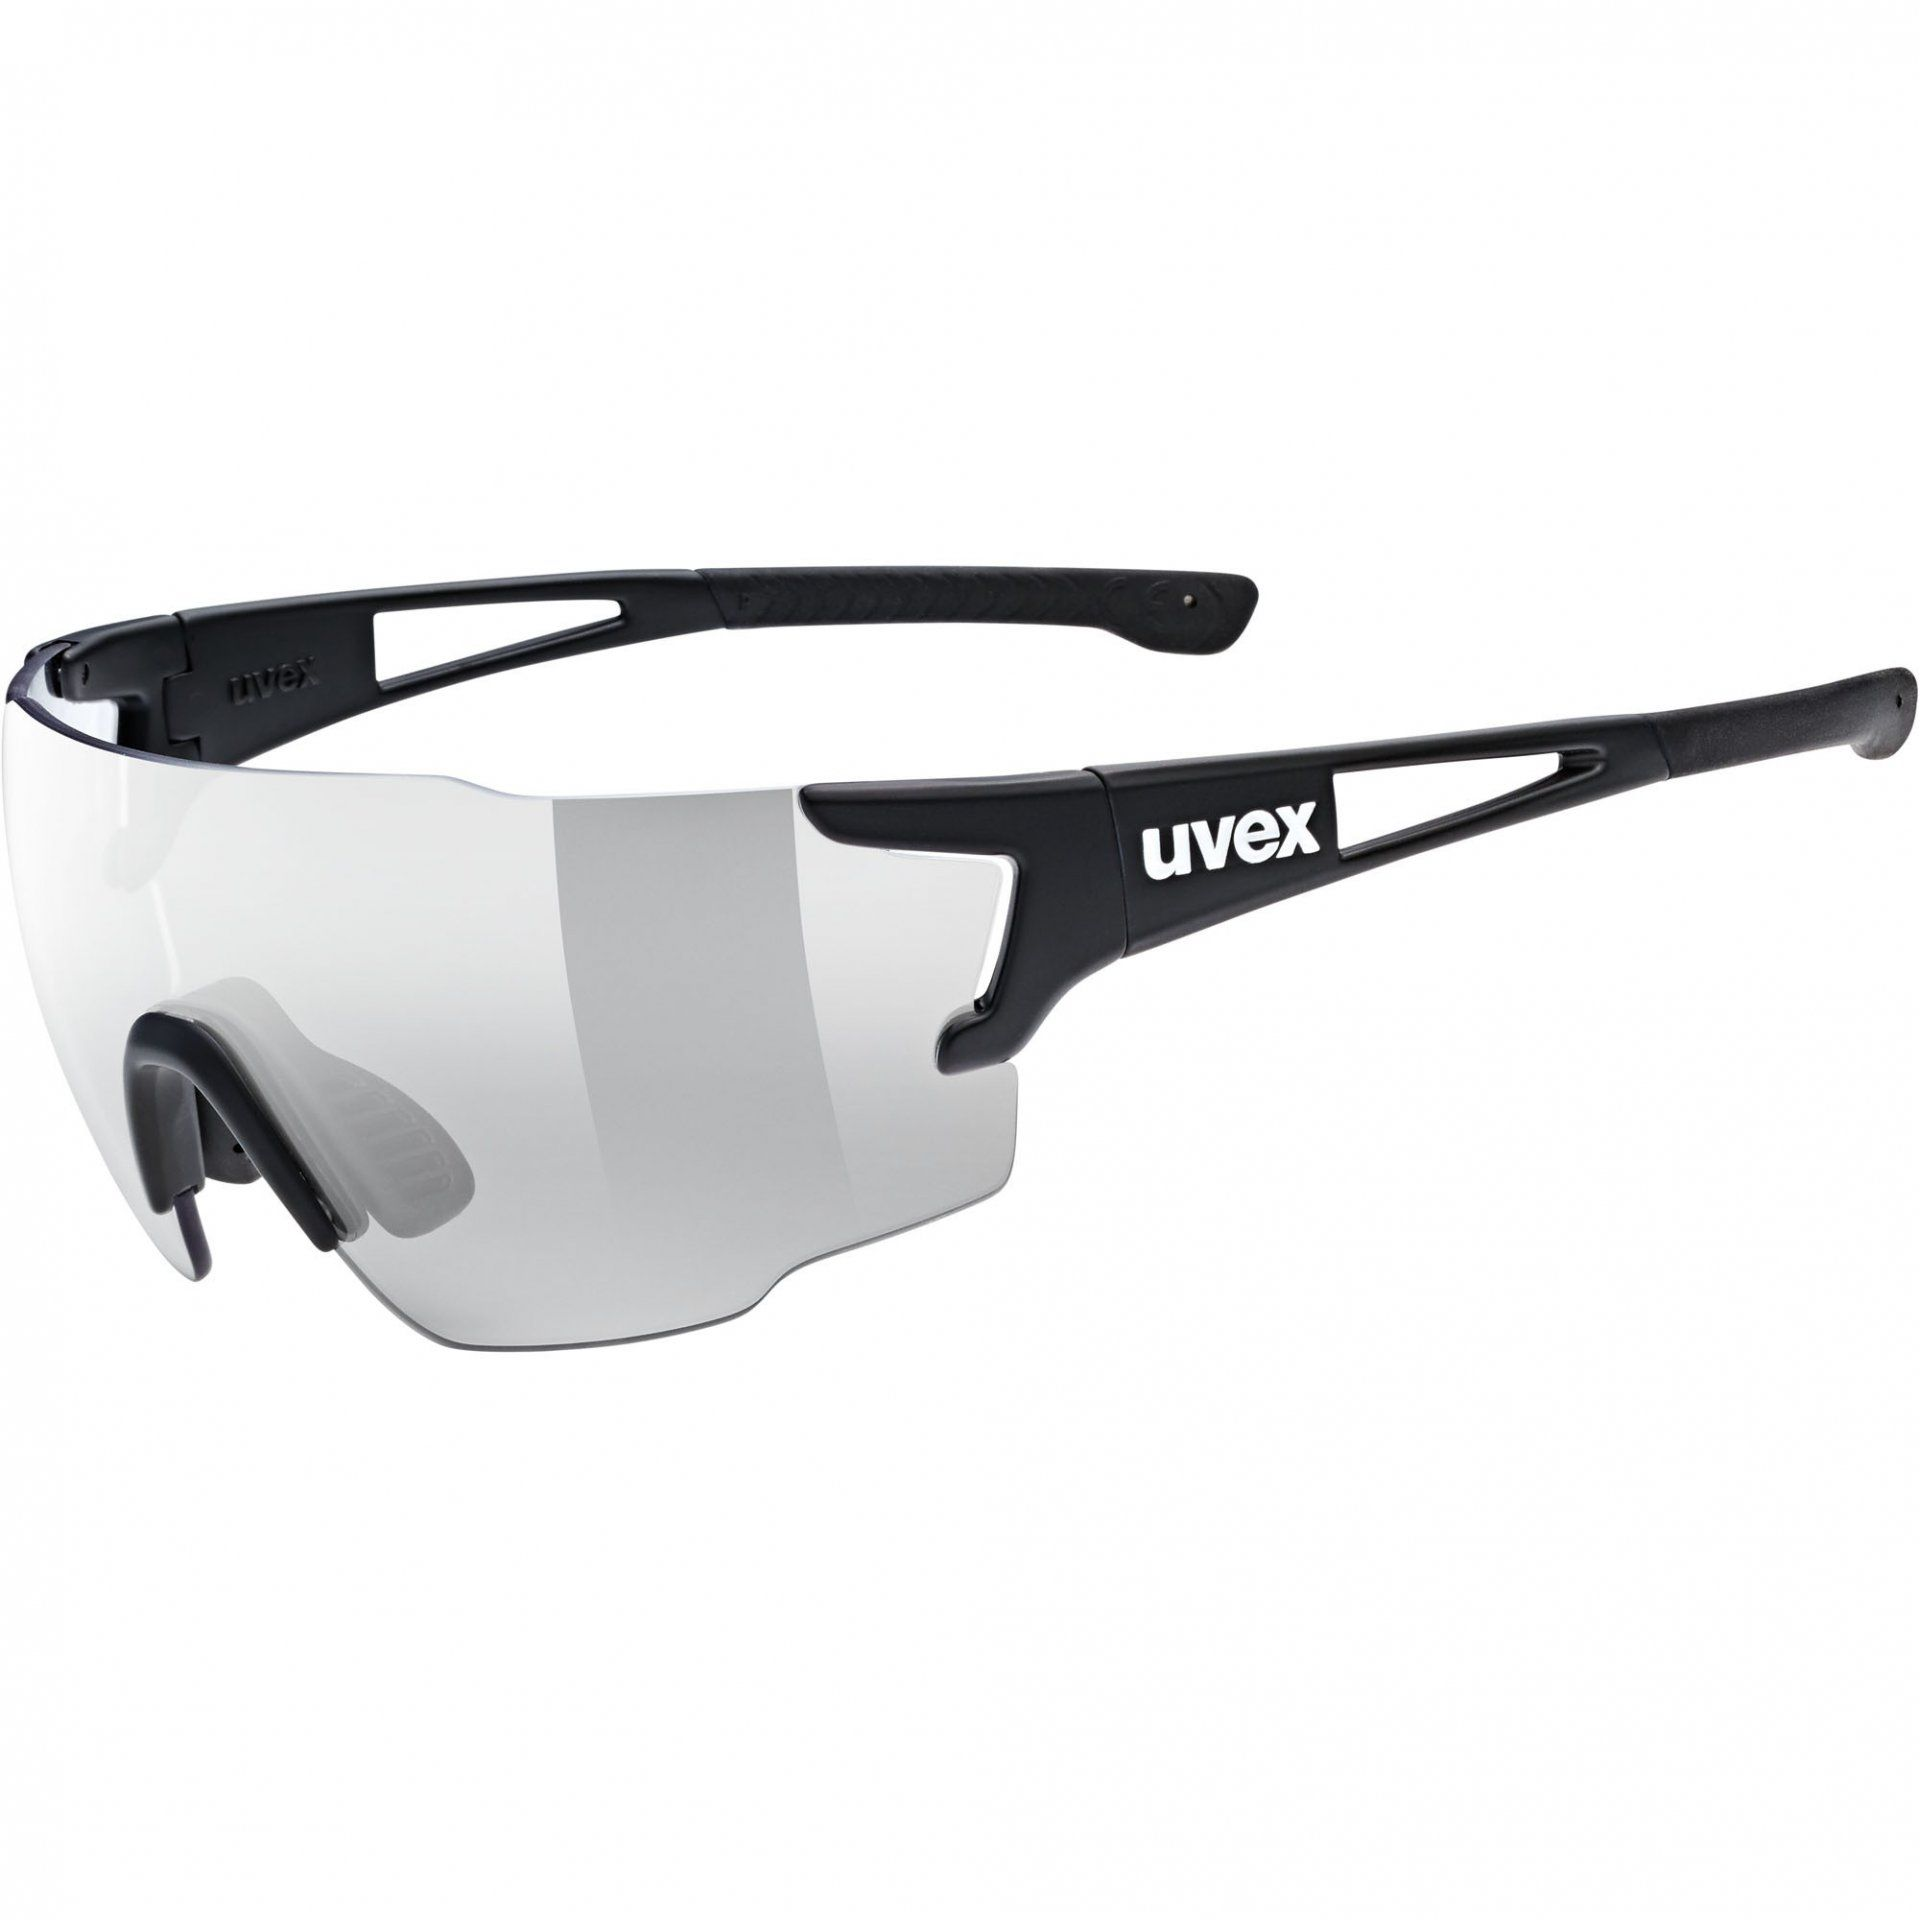 OKULARY UVEX SPORTSTYLE 804 V BLACK|SMOKE 2201 1